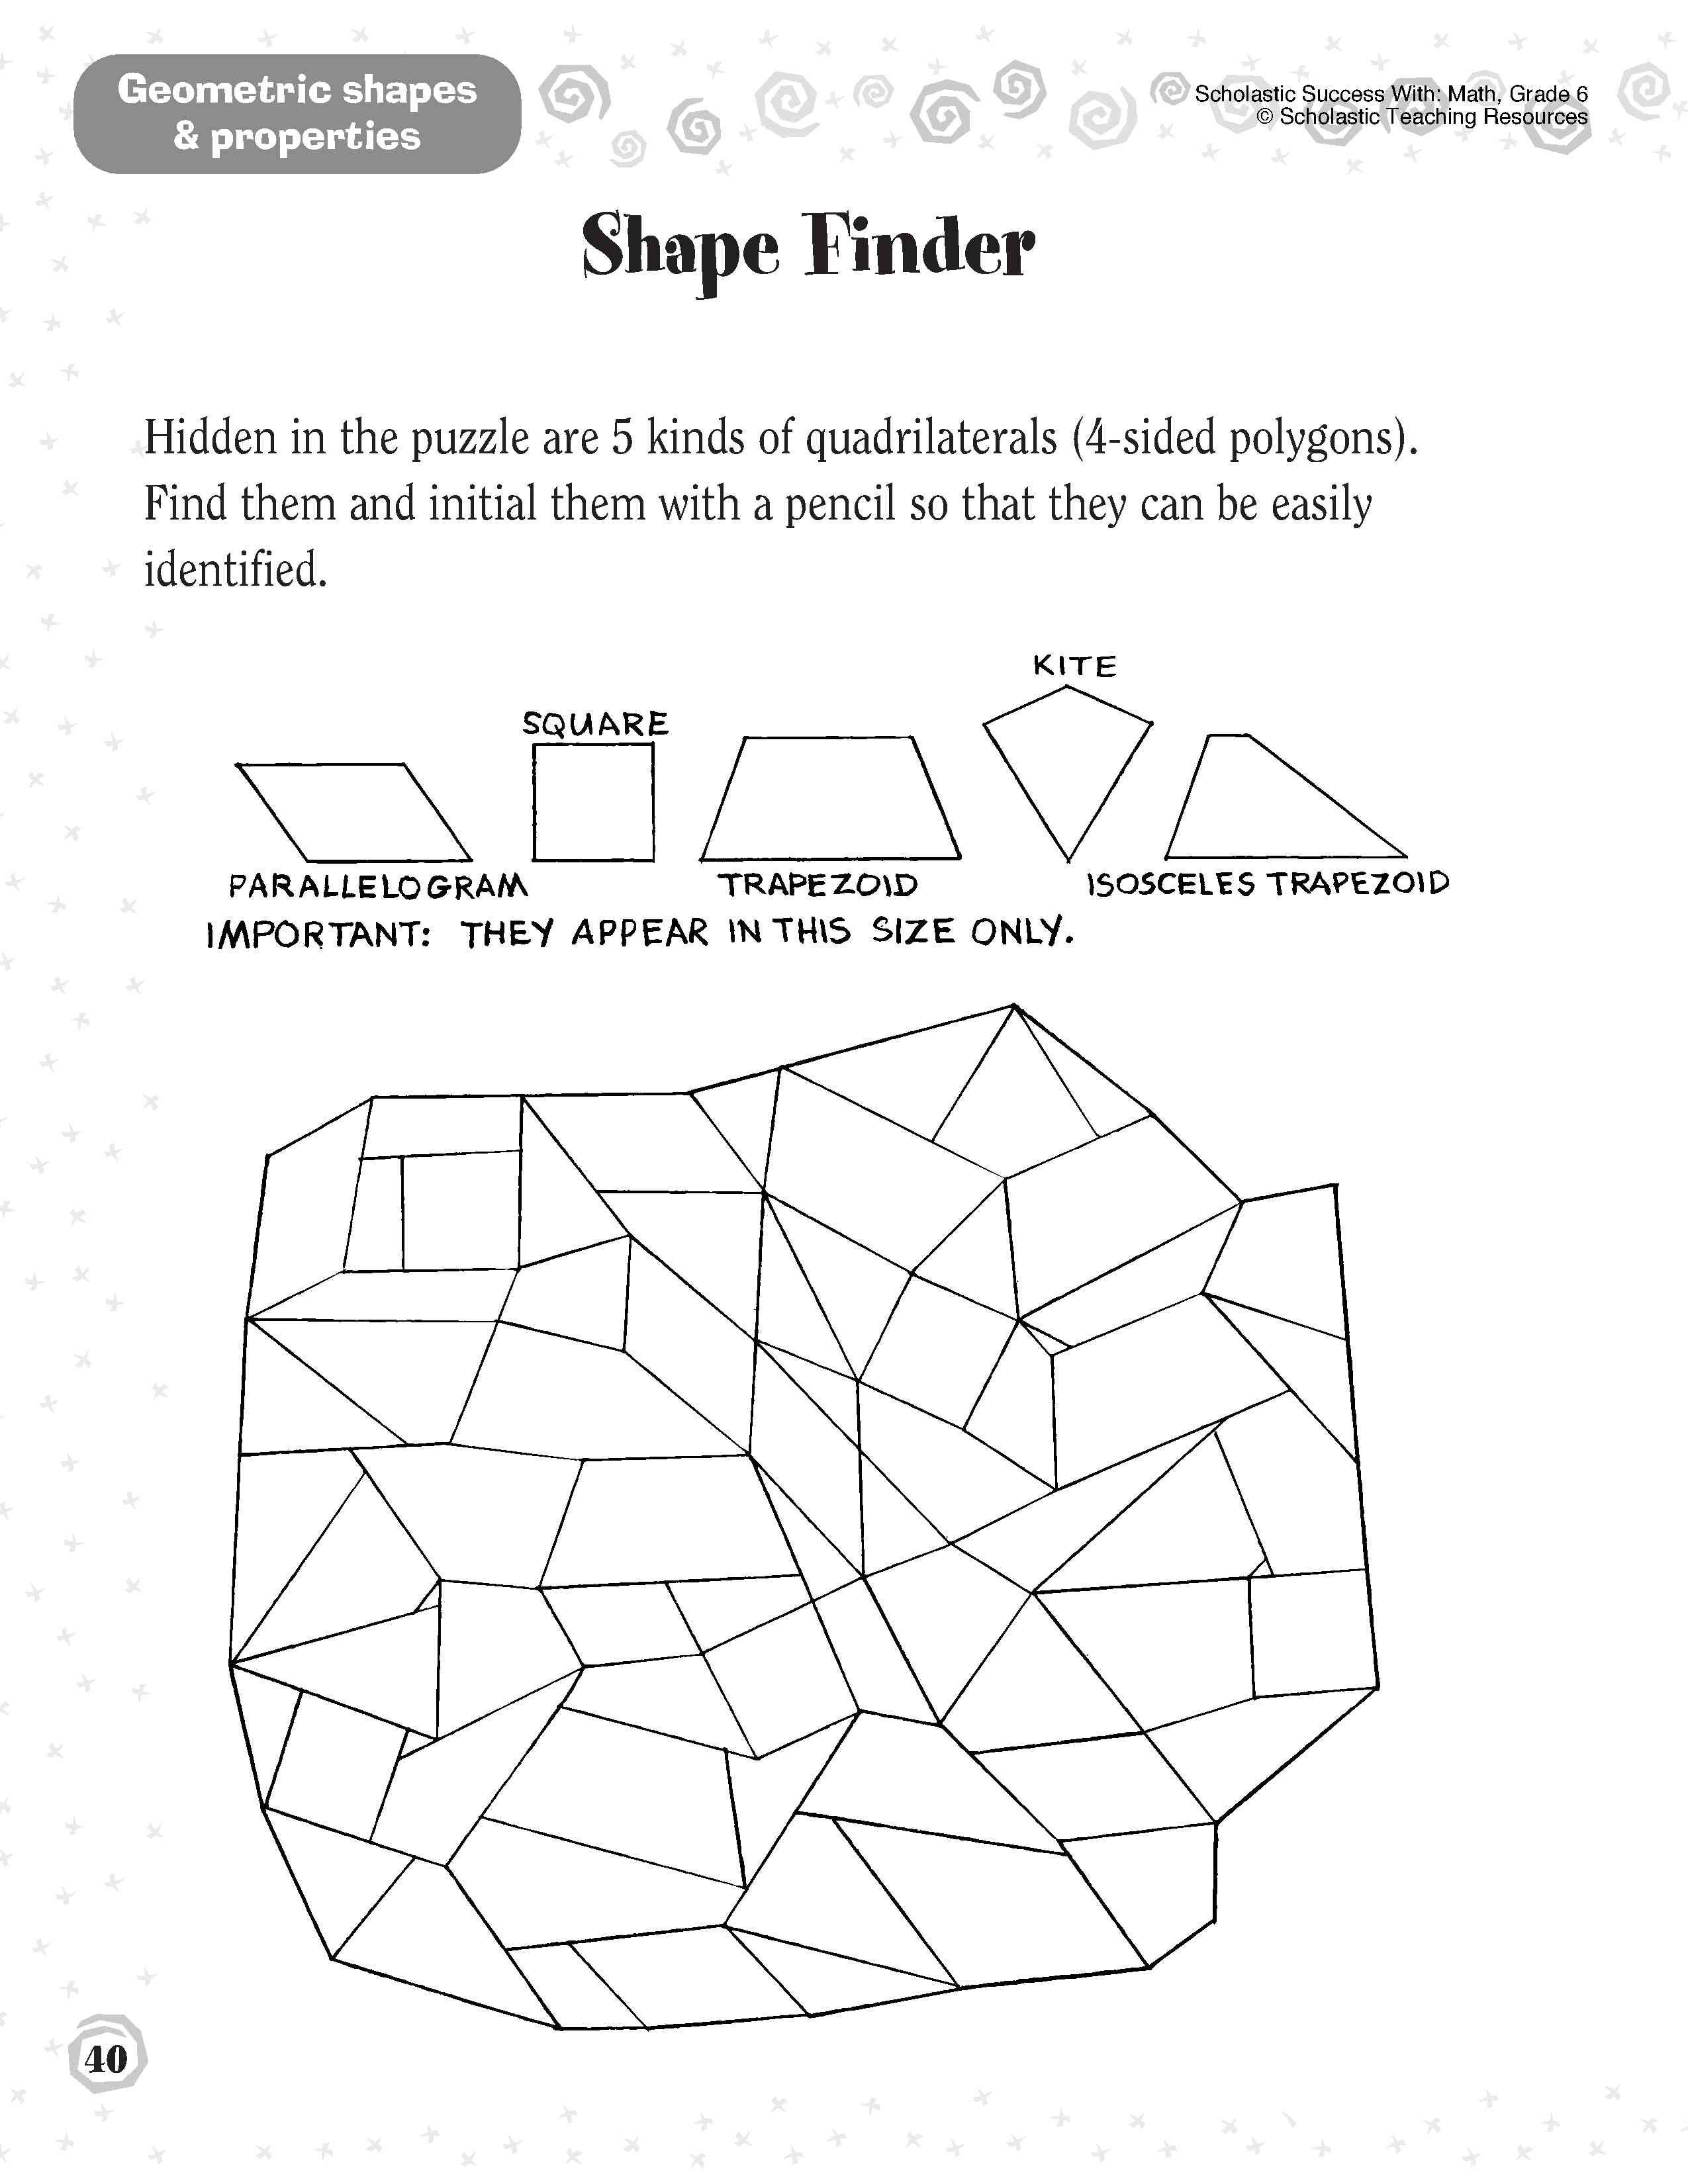 Sorting Shapes Worksheets First Grade Shapes 1st Grade Worksheets In 2020 Education Math Geometry Worksheets How To Memorize Things